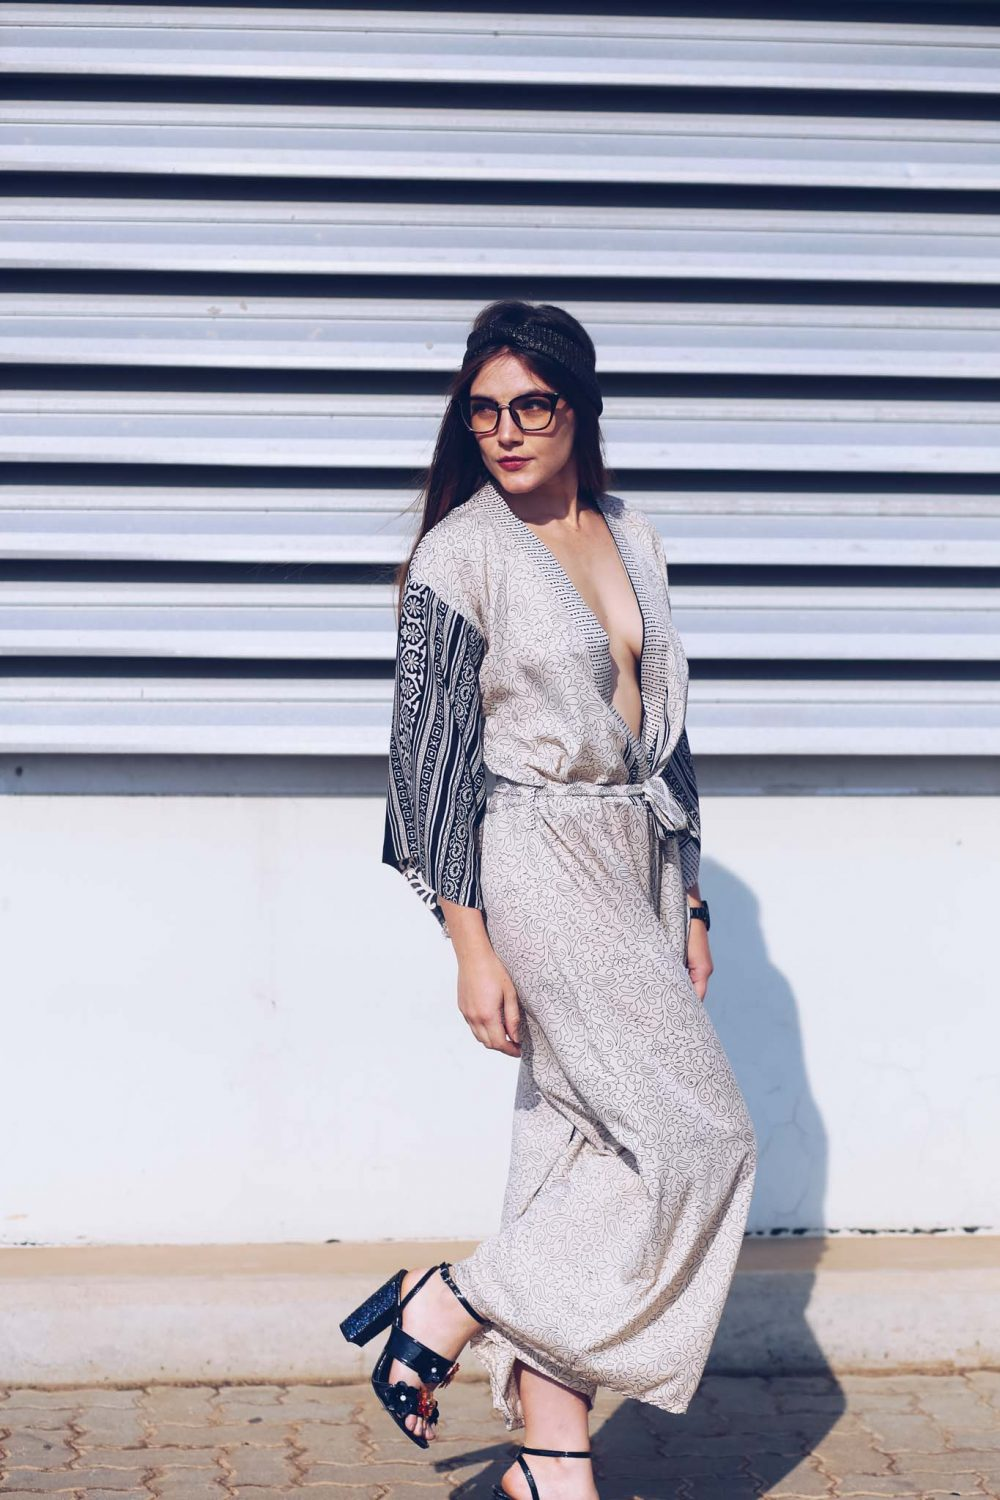 Meet Mala Me! The dreamiest jumpsuits around…